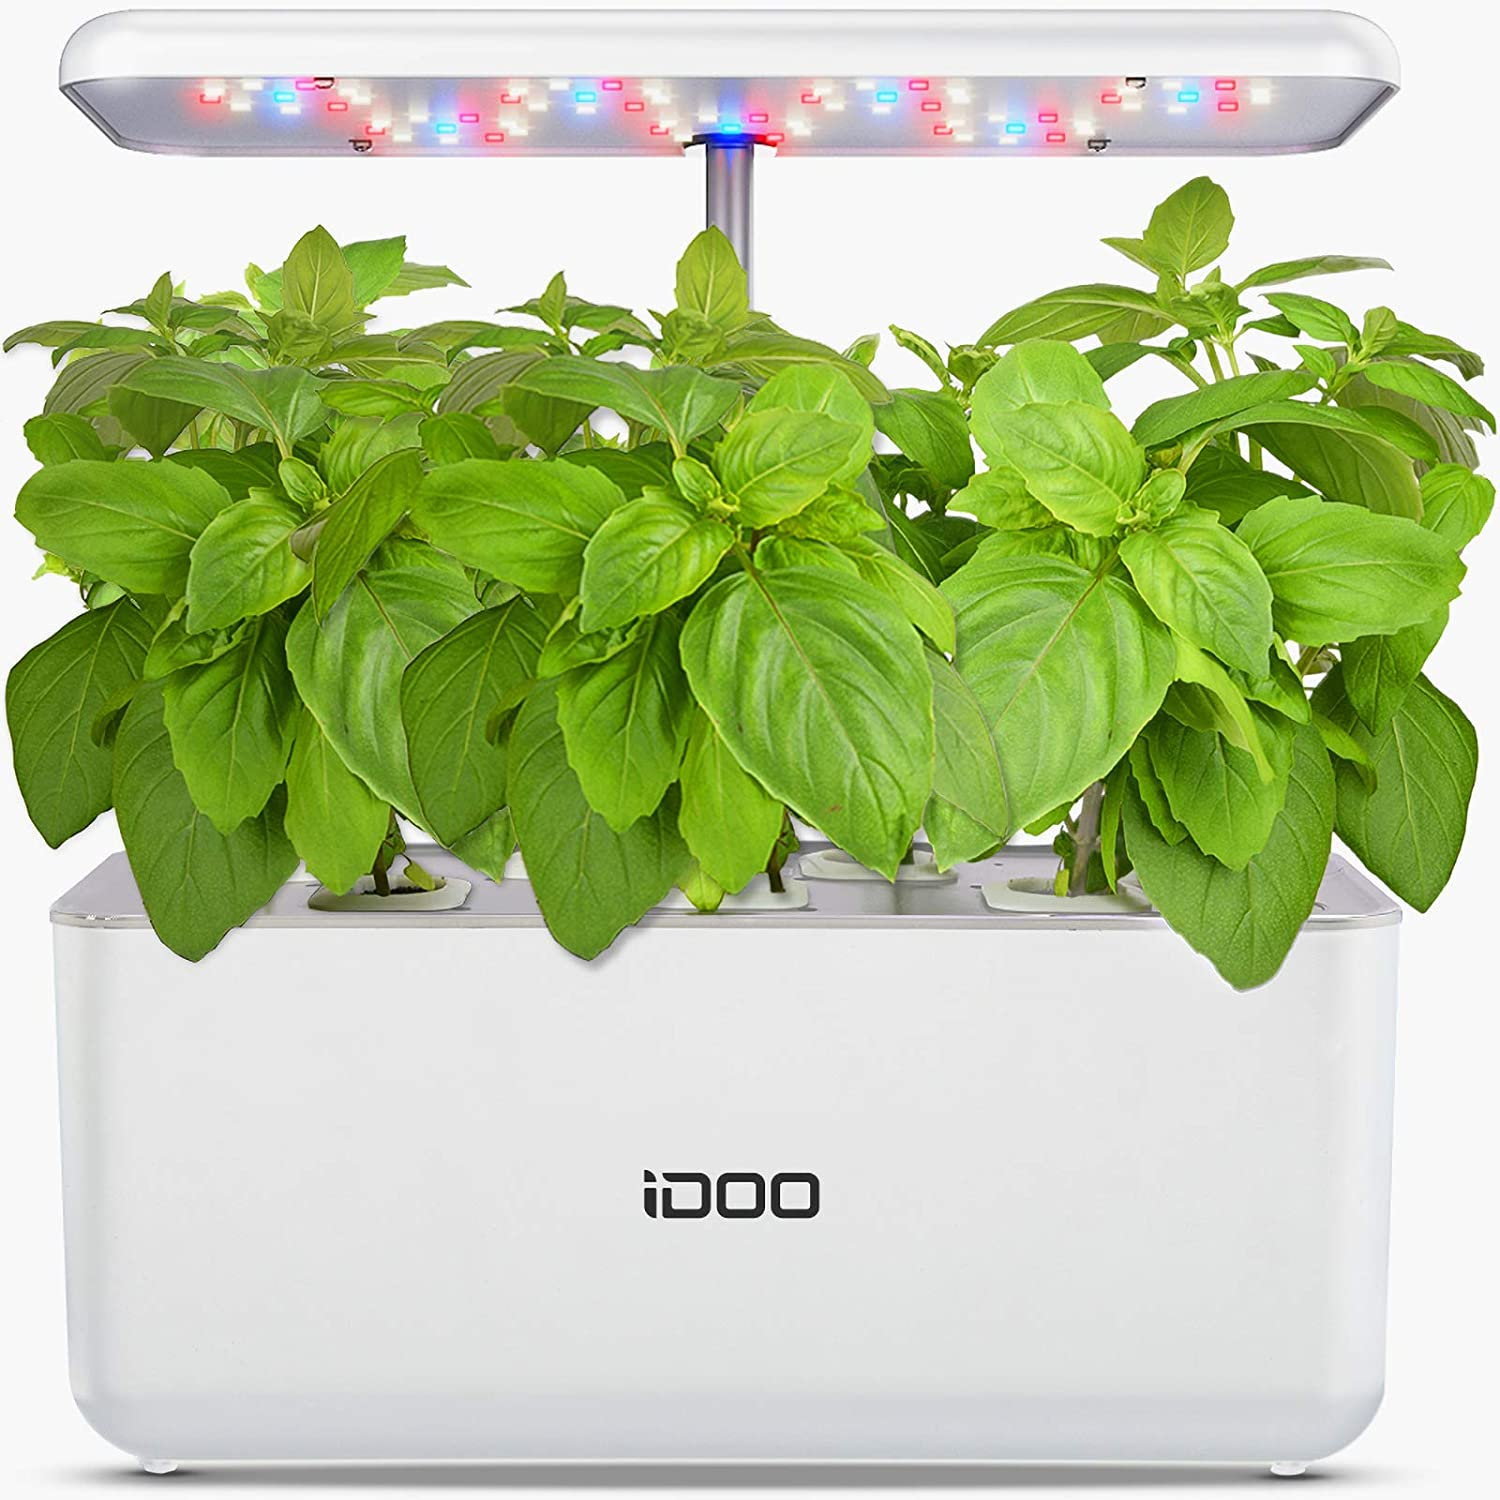 Hydroponics-Growing-System-Indoor-Garden-Starter-Kit-with-LED-Grow-Light-Smart-Garden-Planter-for-Home-Kitchen-Automatic-Timer-Germination-Kit-adjustable-Height